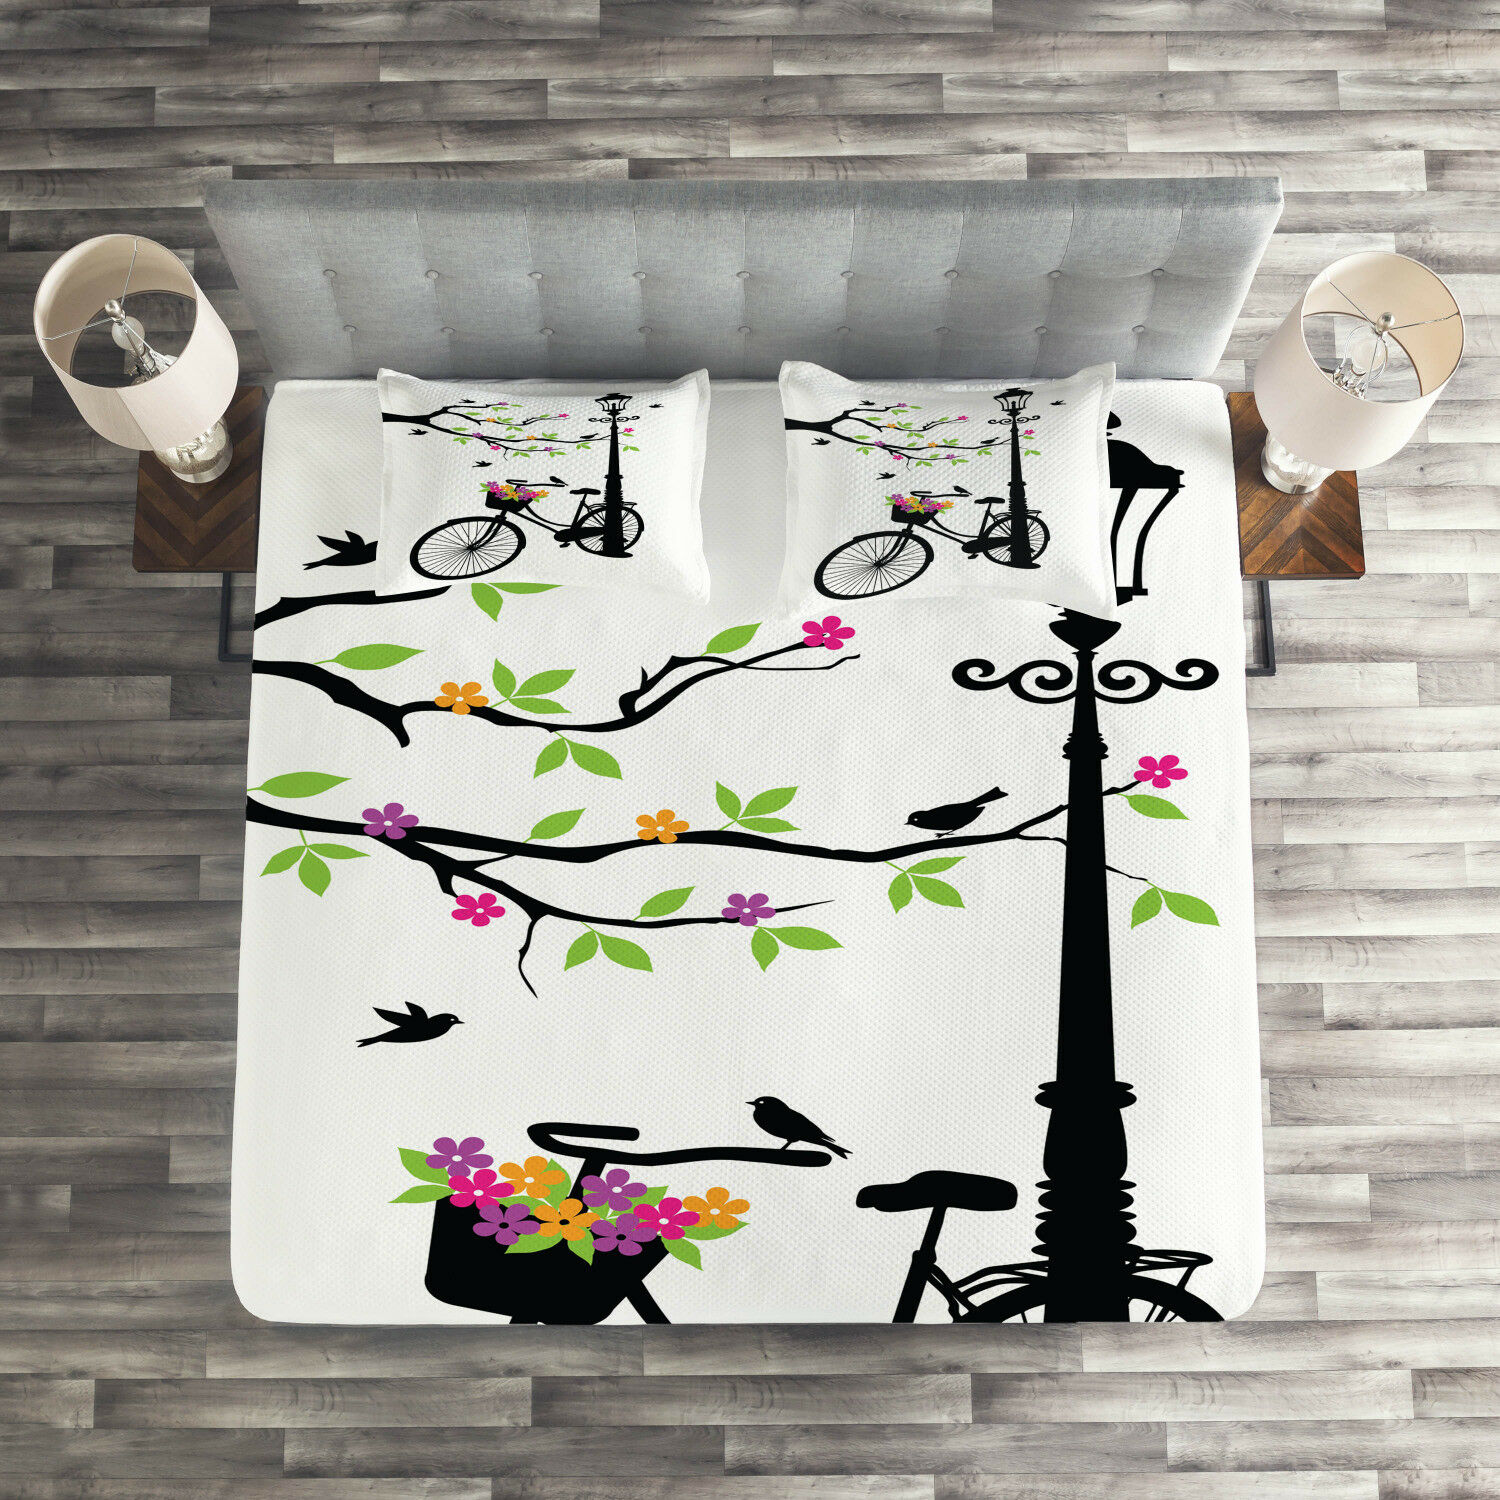 Nature Quilted Coverlet & Pillow Shams Set, Spring Tree Birds Bike Print